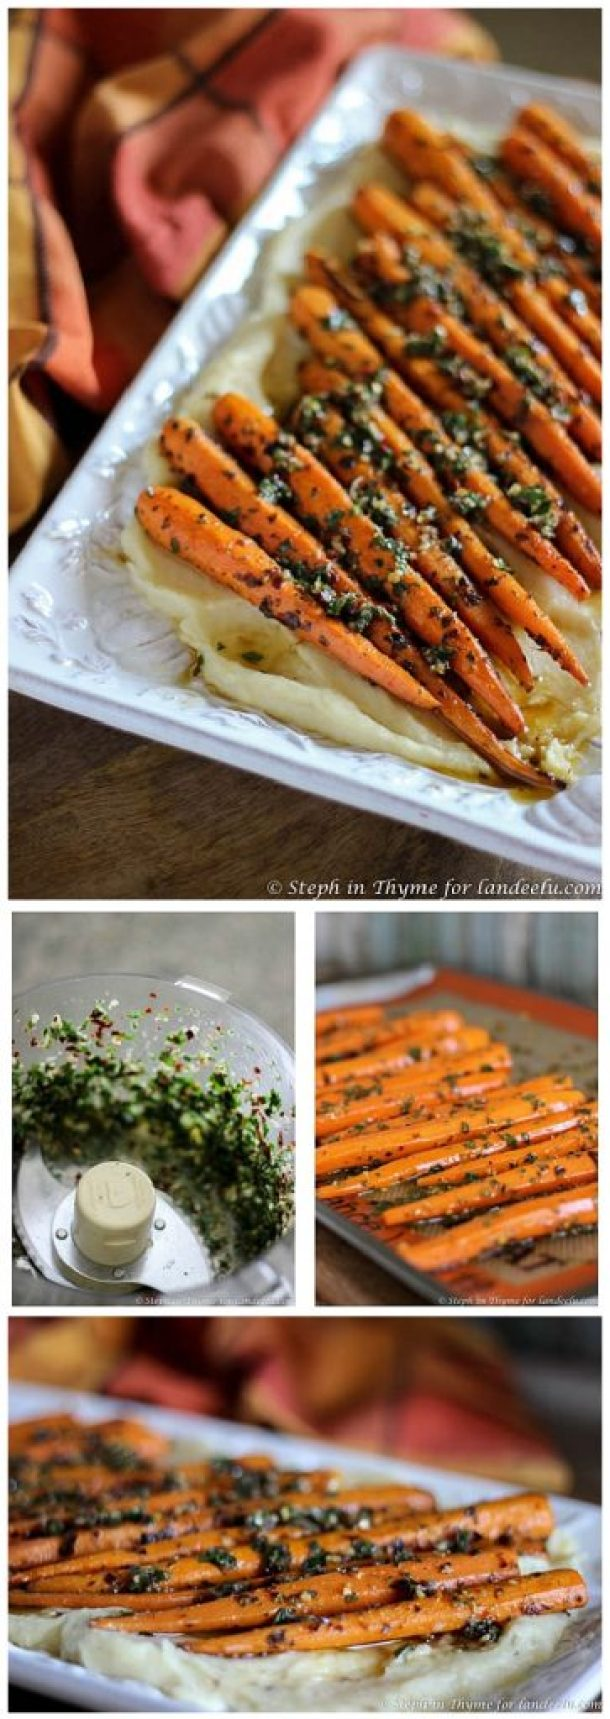 Roasted Chimichurri Carrots with Parmesan Parsnip Purée Side Dish Recipe | Landeelu